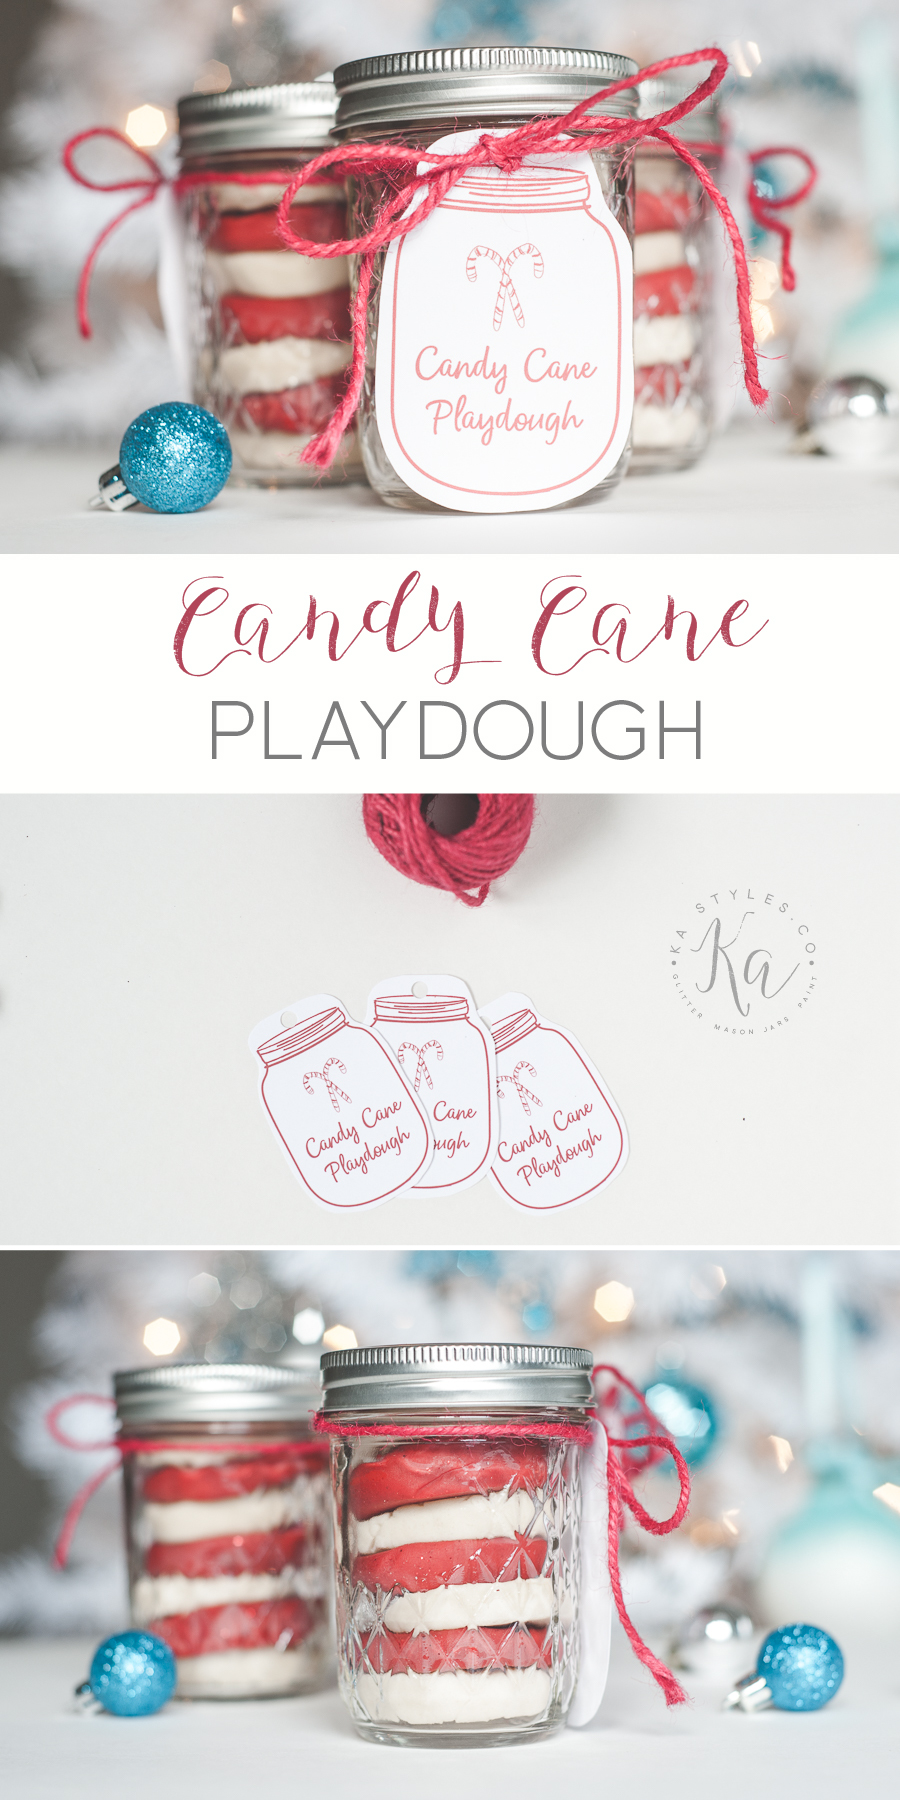 Homemade Candy Cane playdough with free printable mason jar tag.